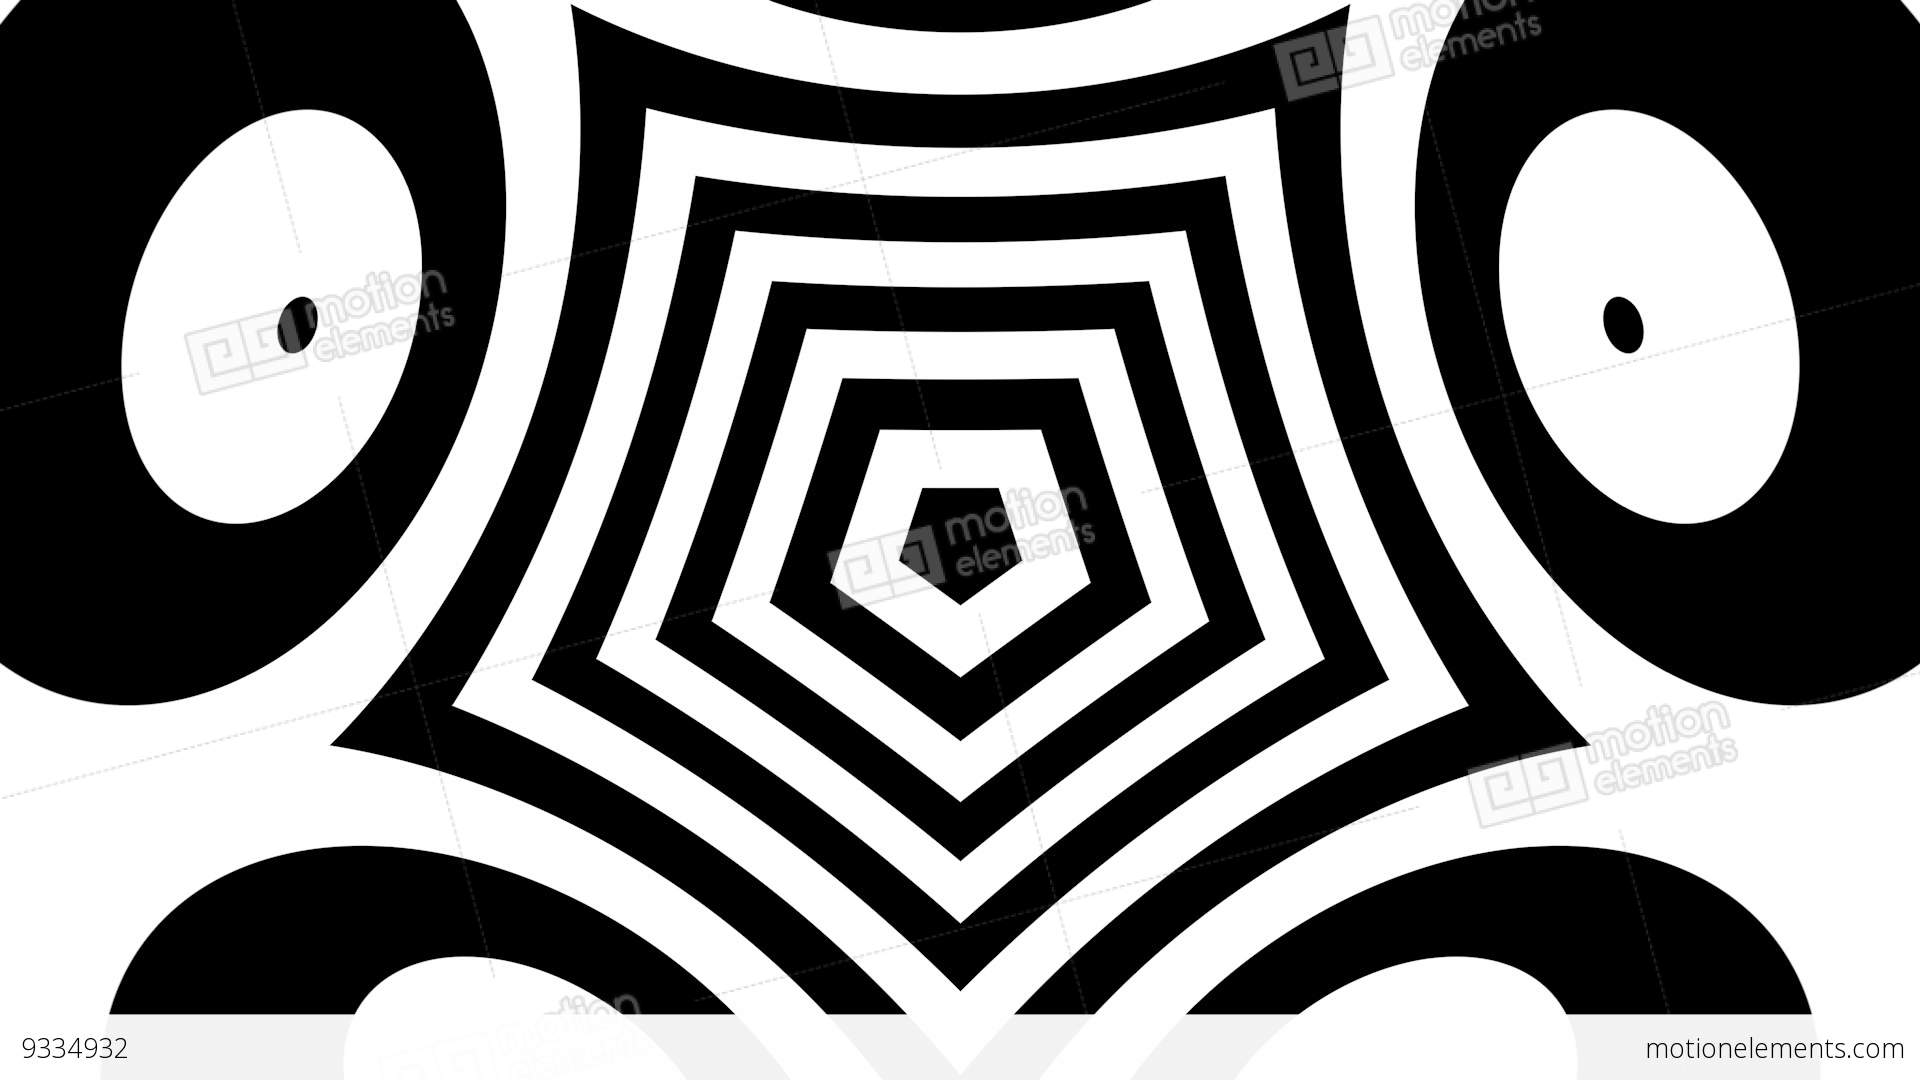 Trippy Geometric Black And White Shapes Zooming And Morphing Stock ... for Geometric Shapes Design Black And White  174mzq